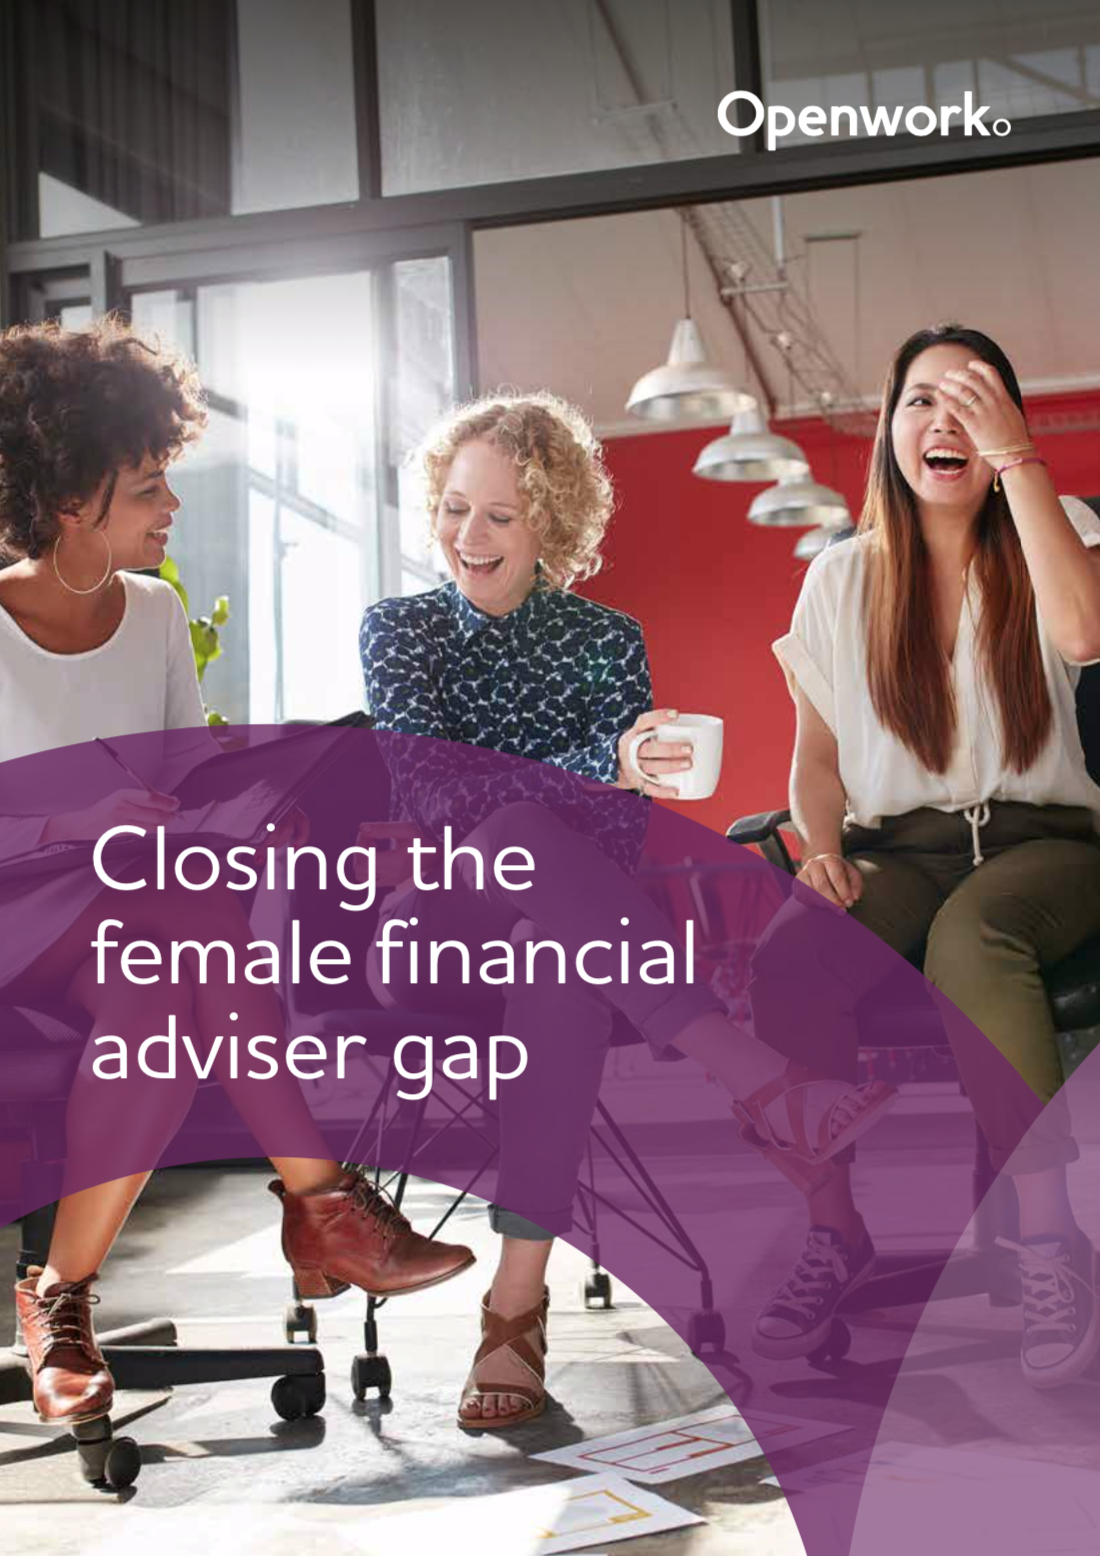 Closing the female financial adviser gap